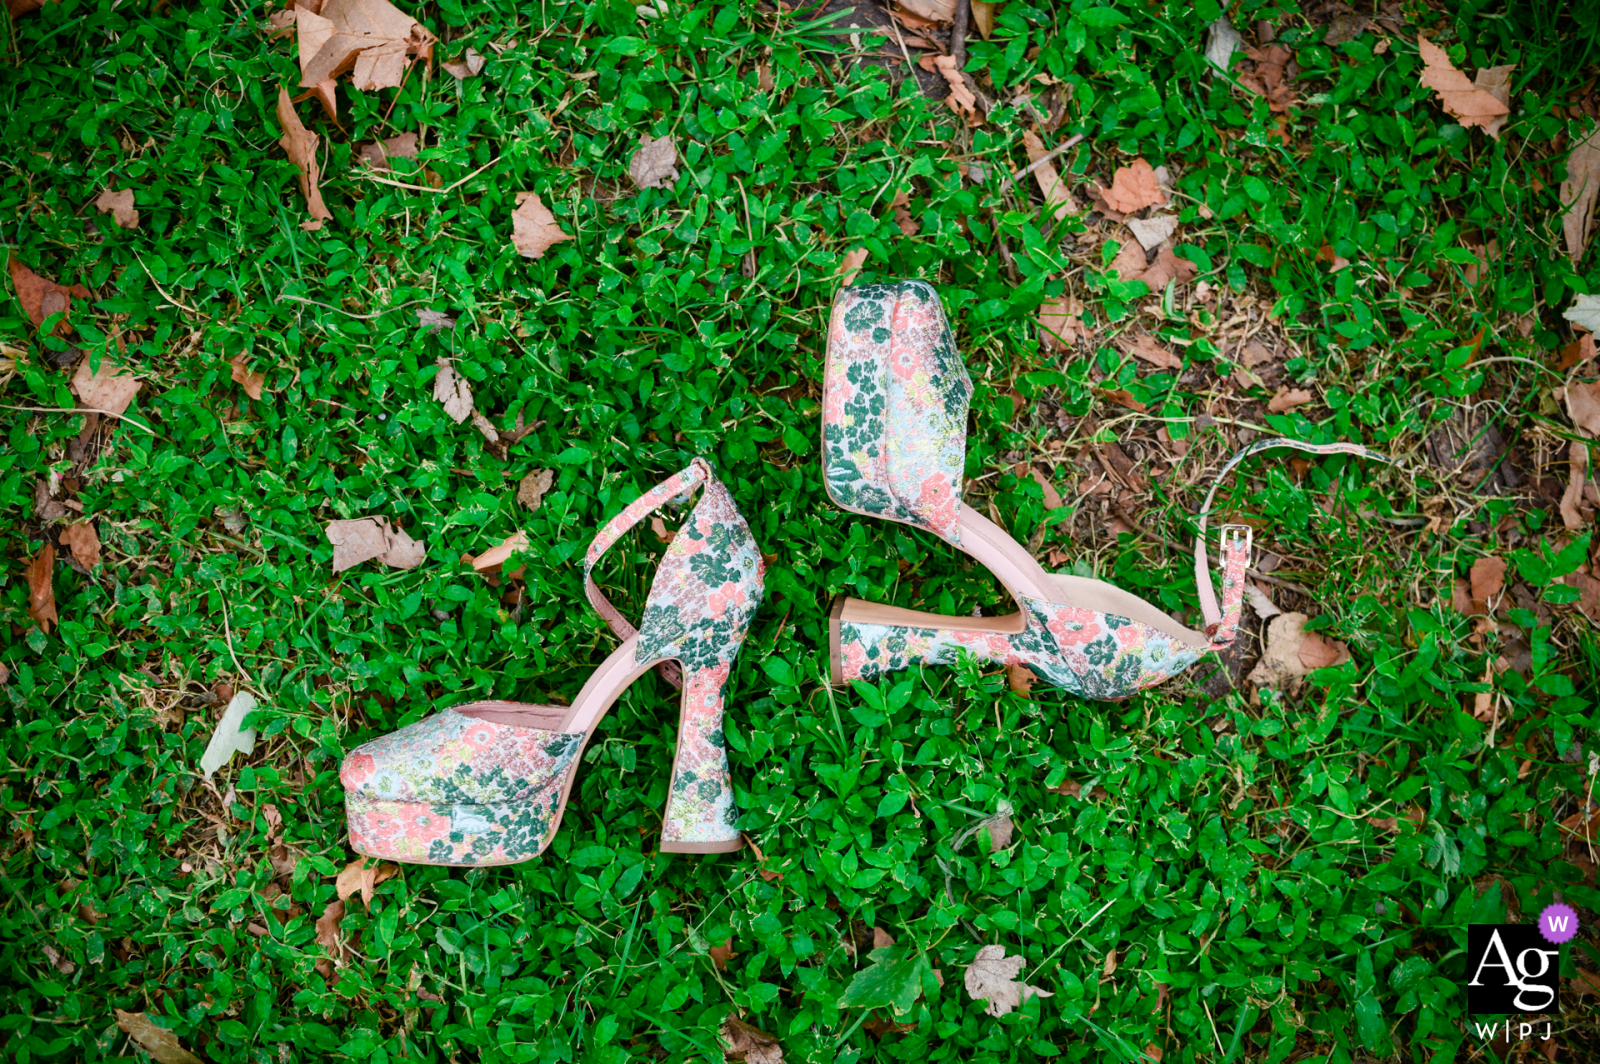 Sow Exotic Farm in Winter Haven, FL fine art wedding flowered shoes detail image of Bride's shoes in the grass before the ceremony begins